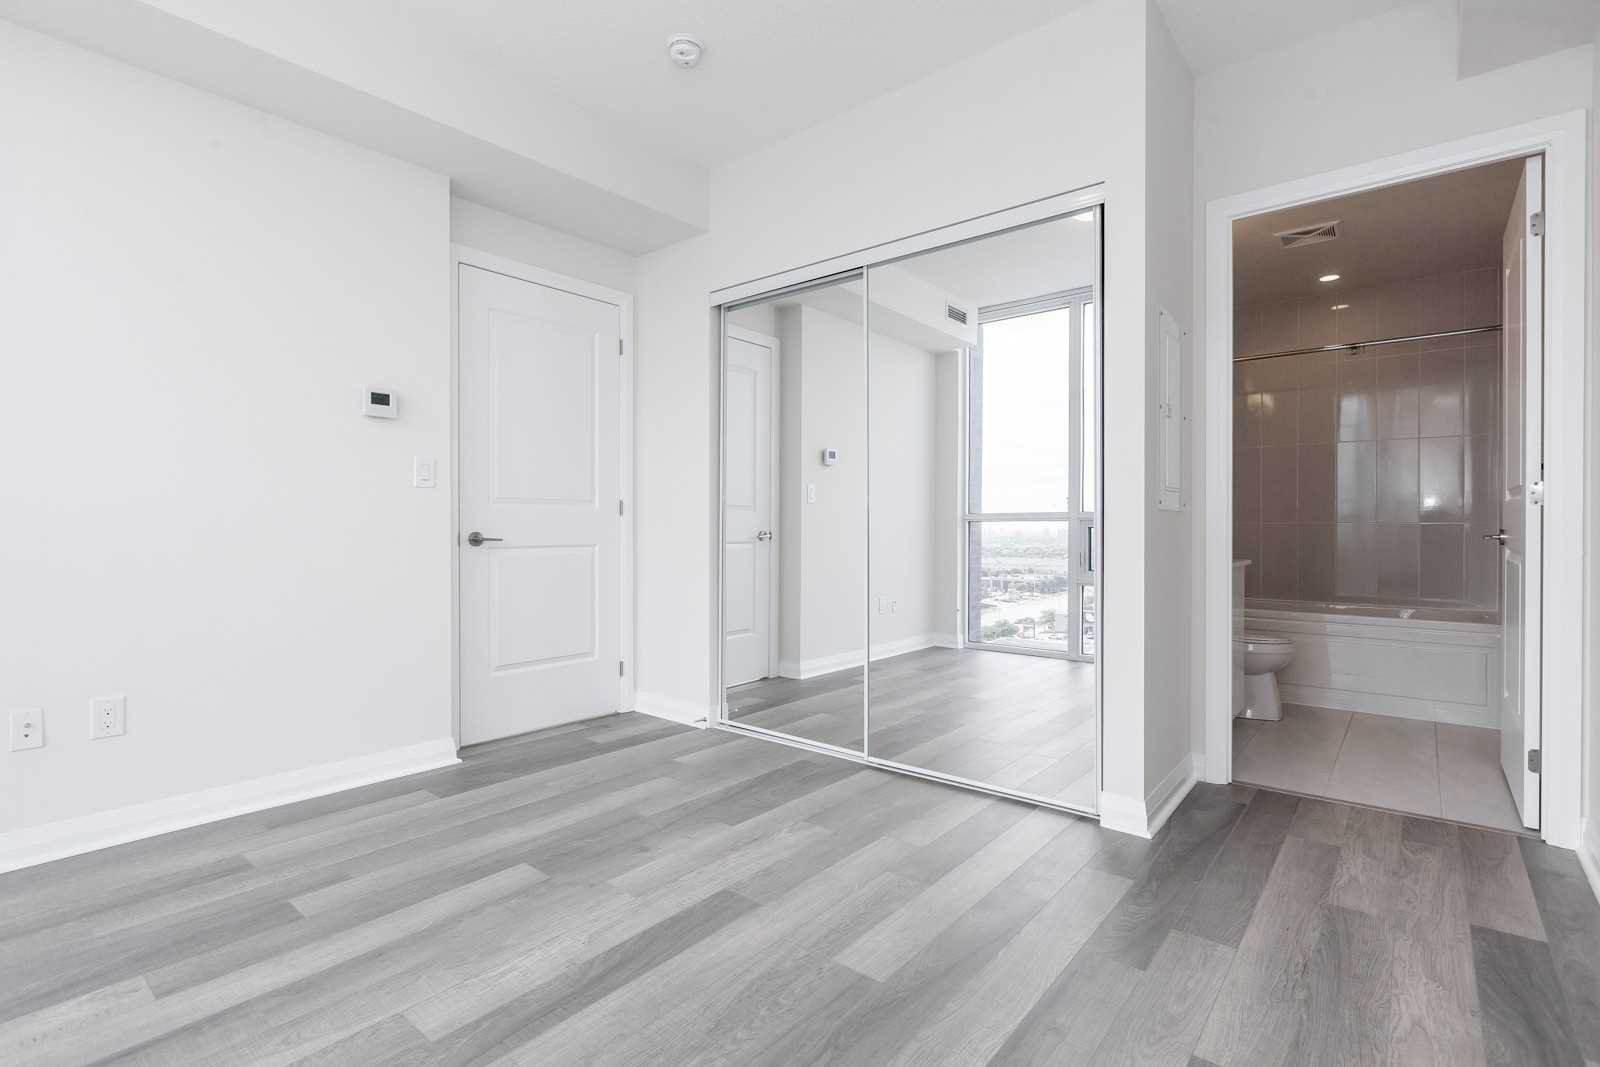 Photo 14: Photos: 1204 5025 Four Springs Avenue in Mississauga: Hurontario Condo for lease : MLS®# W4582092